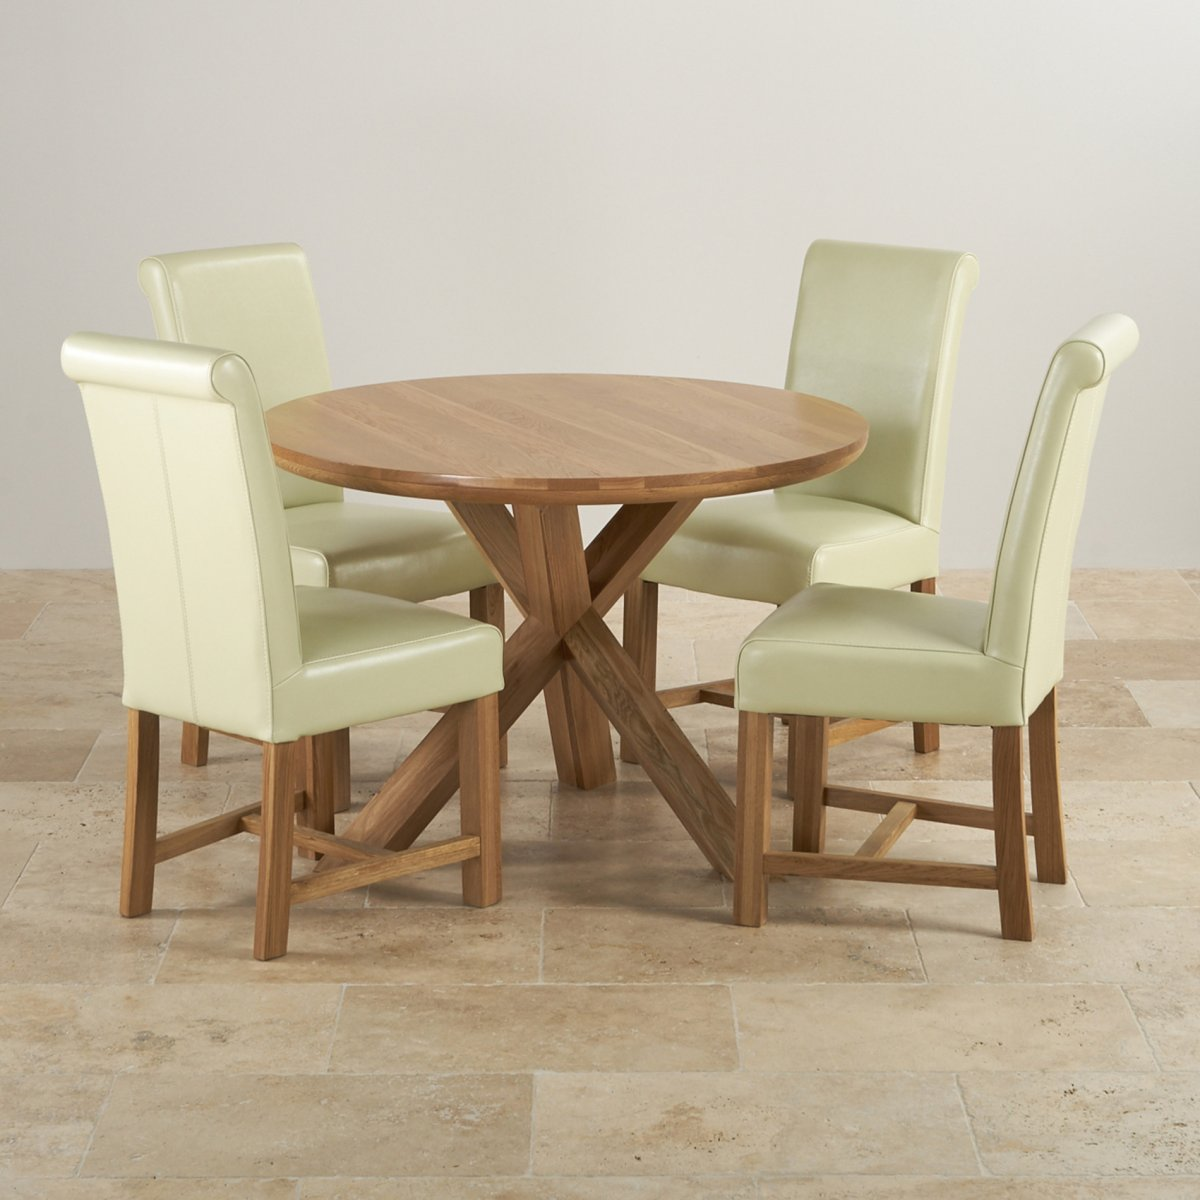 Natural oak round dining set table 4 cream leather chairs for Oak dining table set